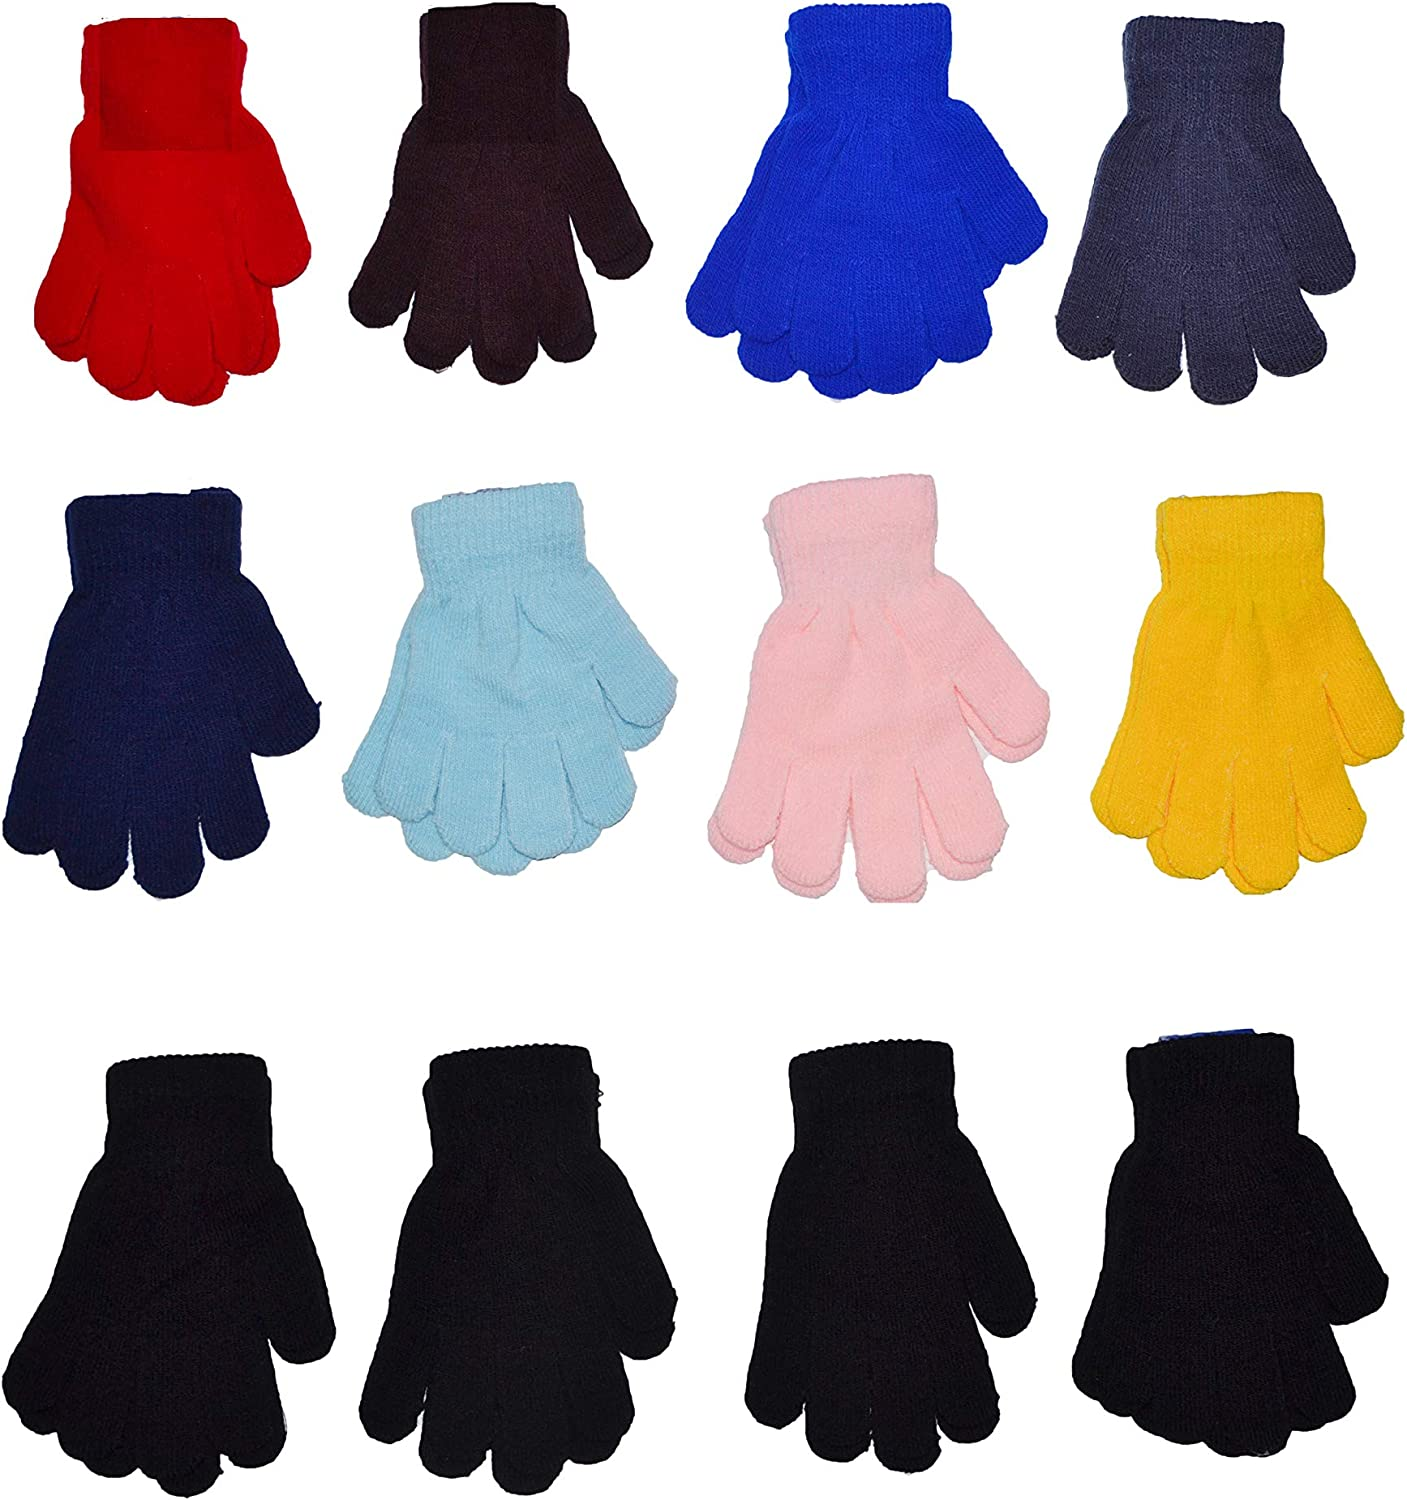 12 Pairs Wholesale Boys Girls Magic Knit Touchscreen Gloves OPT Brand 6 to 18 years